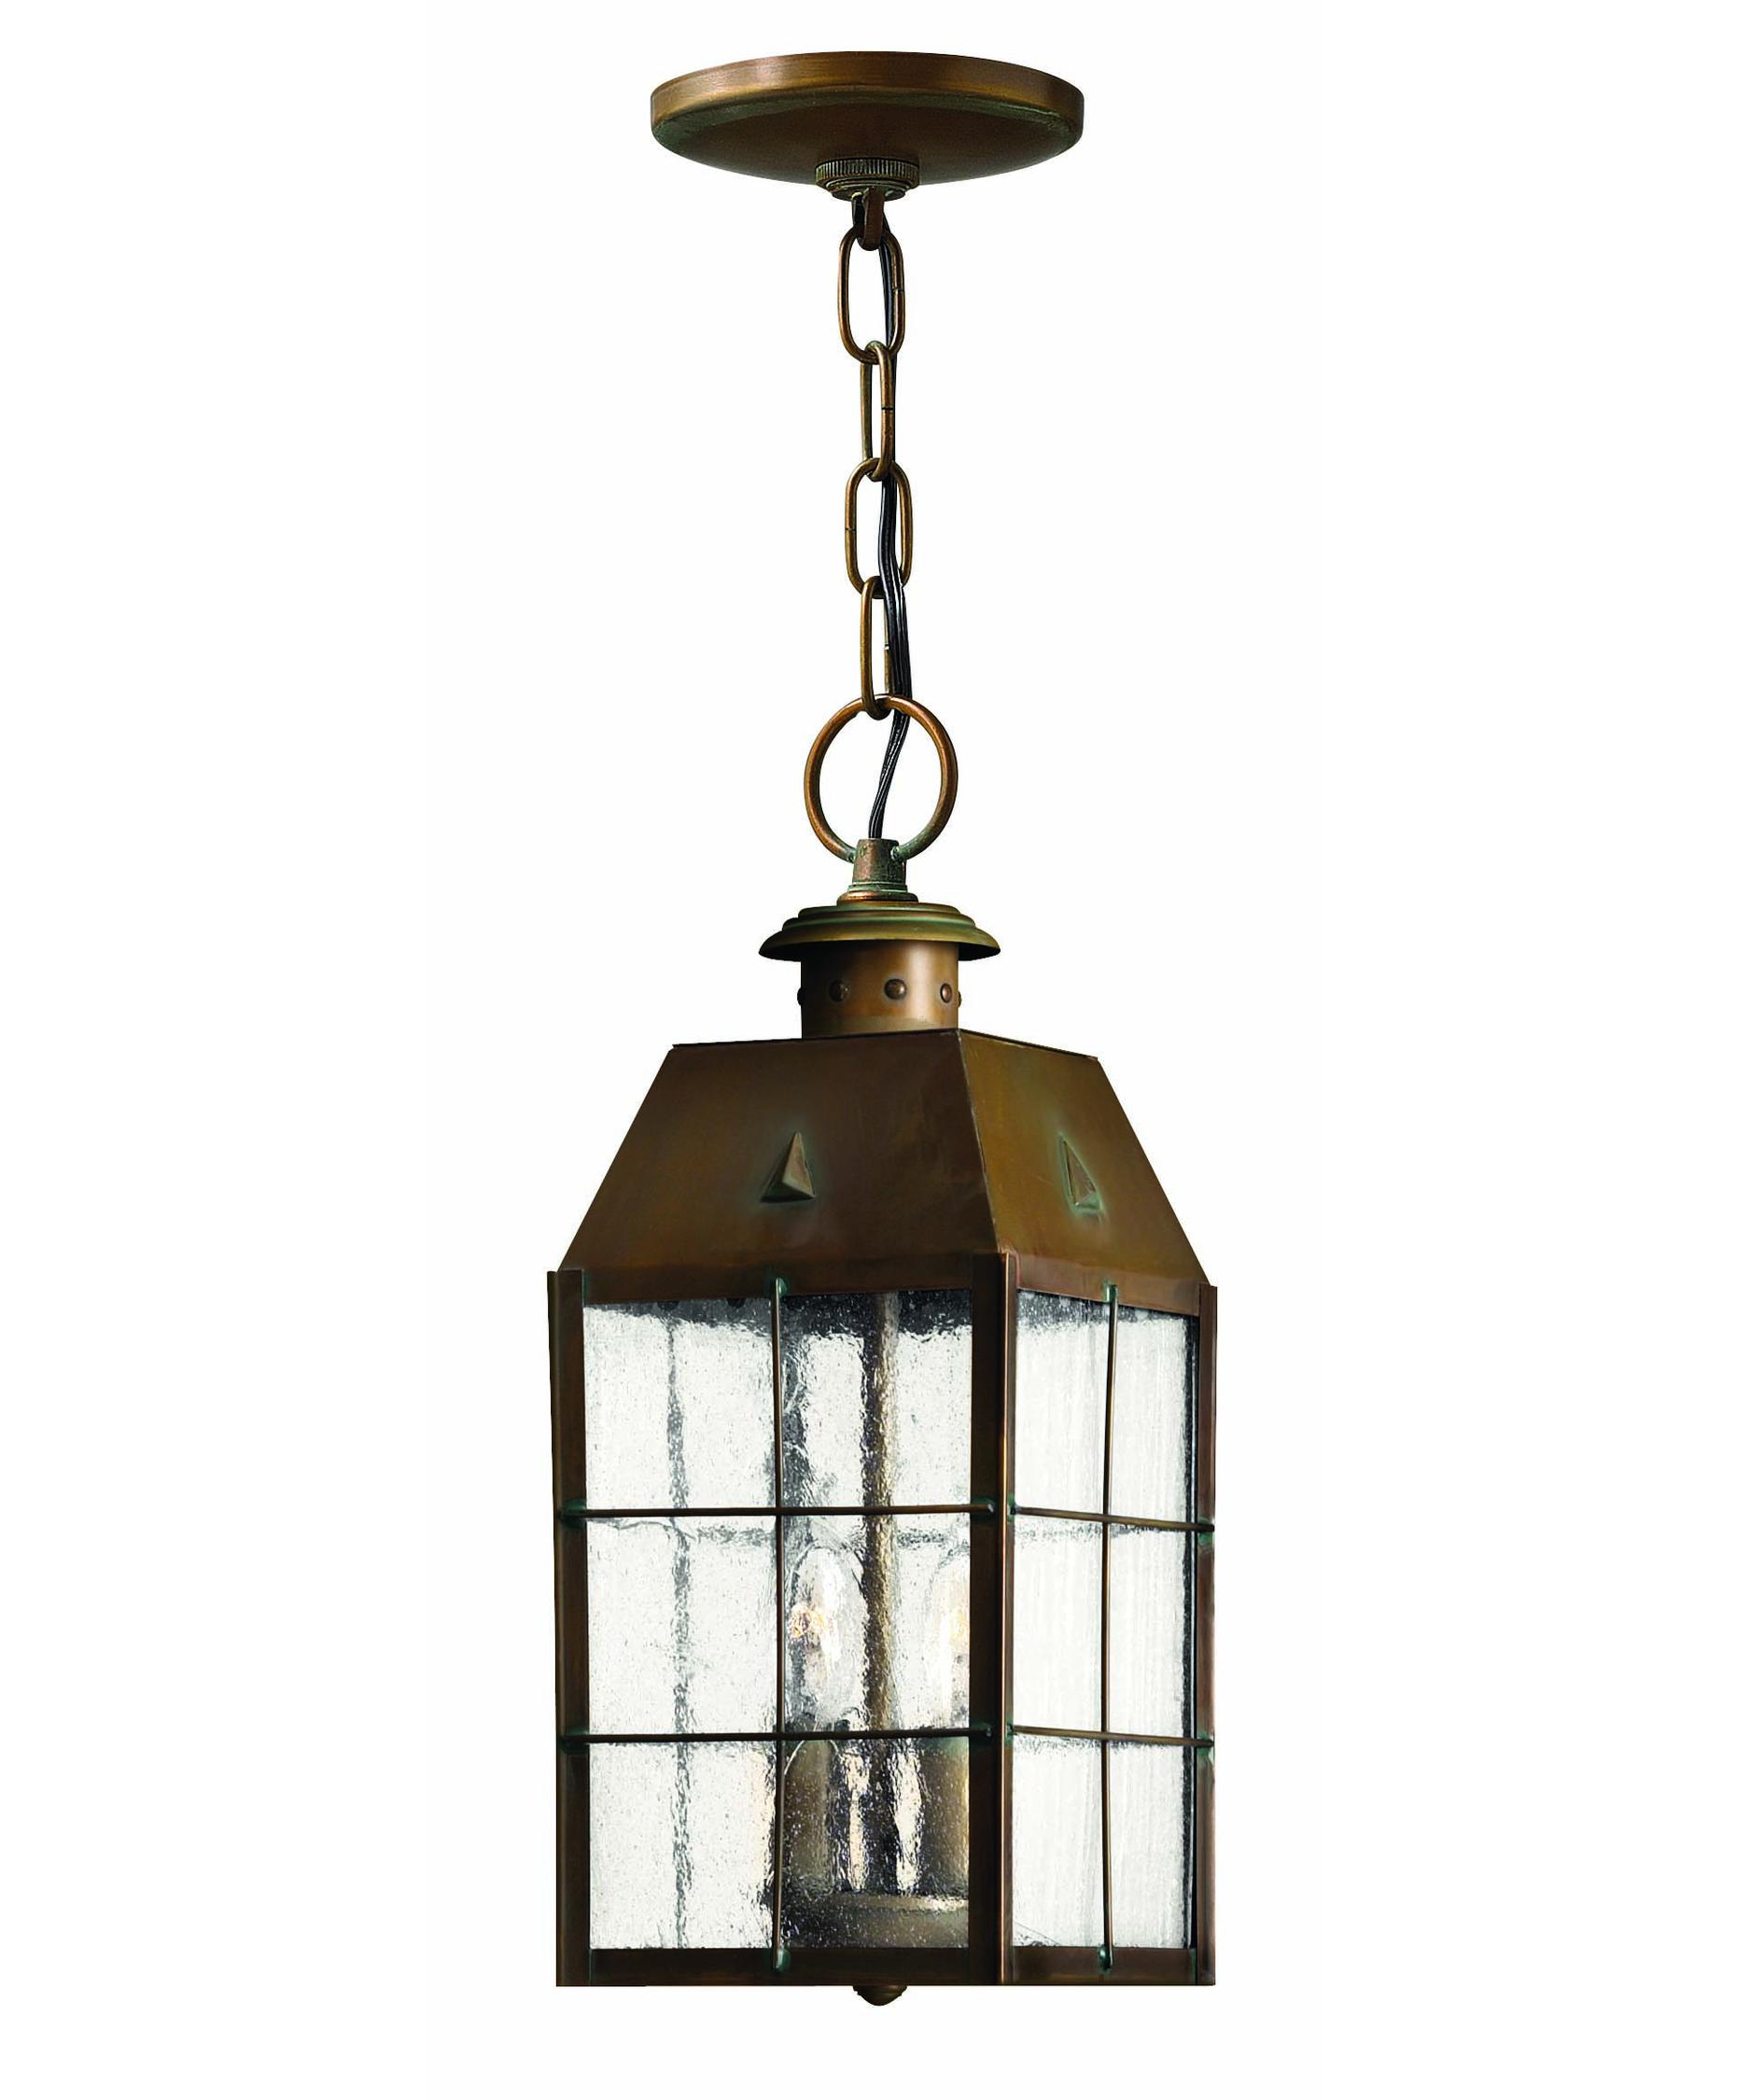 Outdoor porch lamp - Shown In Aged Brass Finish And Clear Seedy Glass